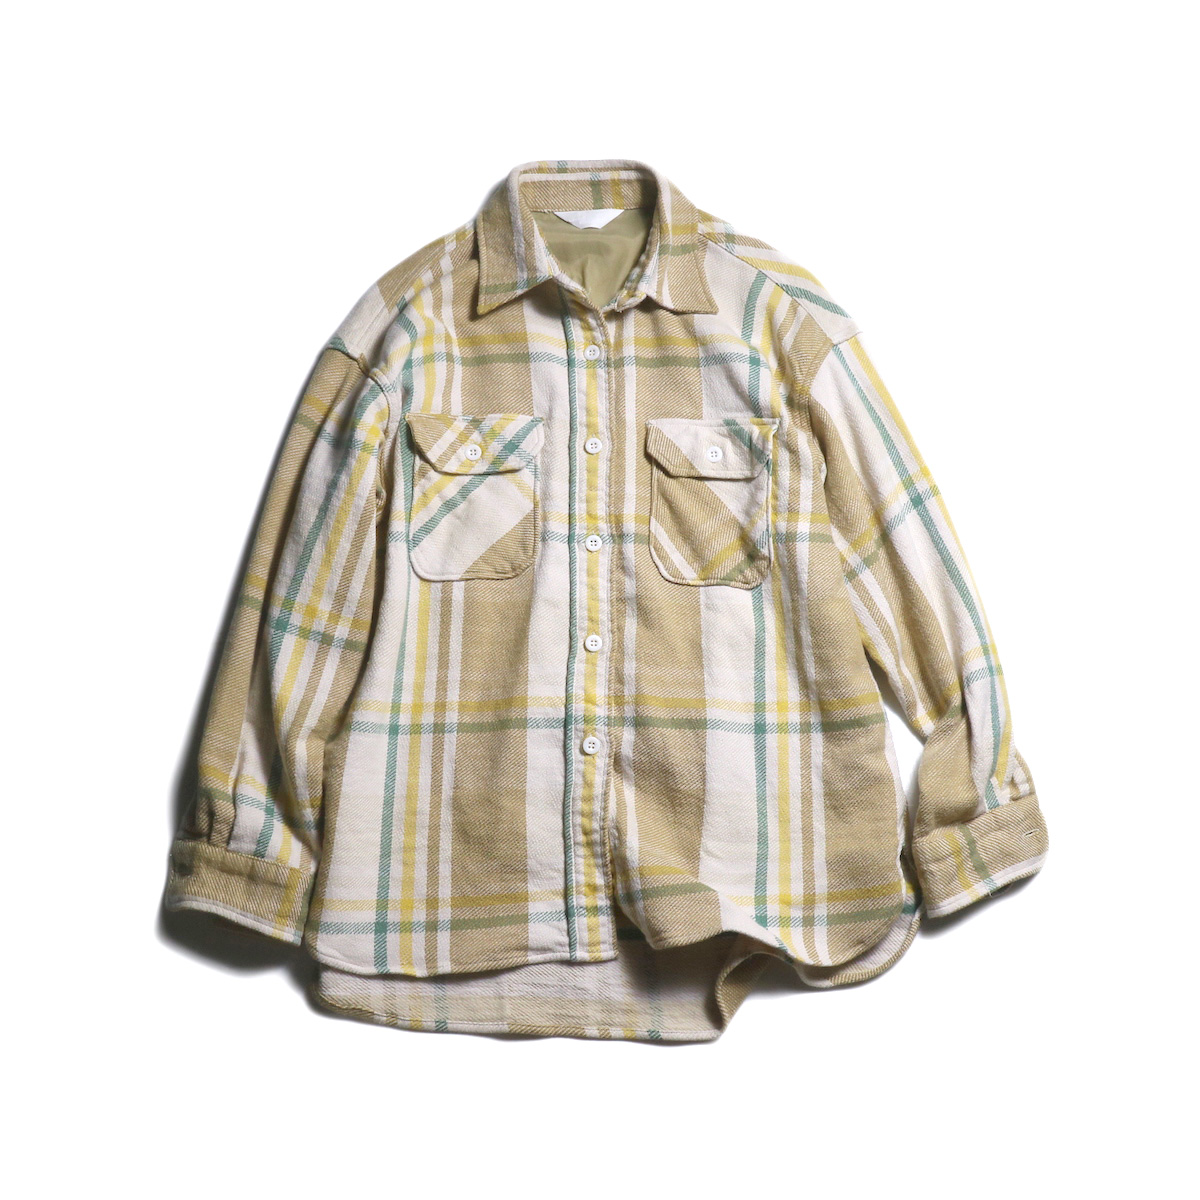 UNUSED / US1699 Check Flannel Shirt (Beige)